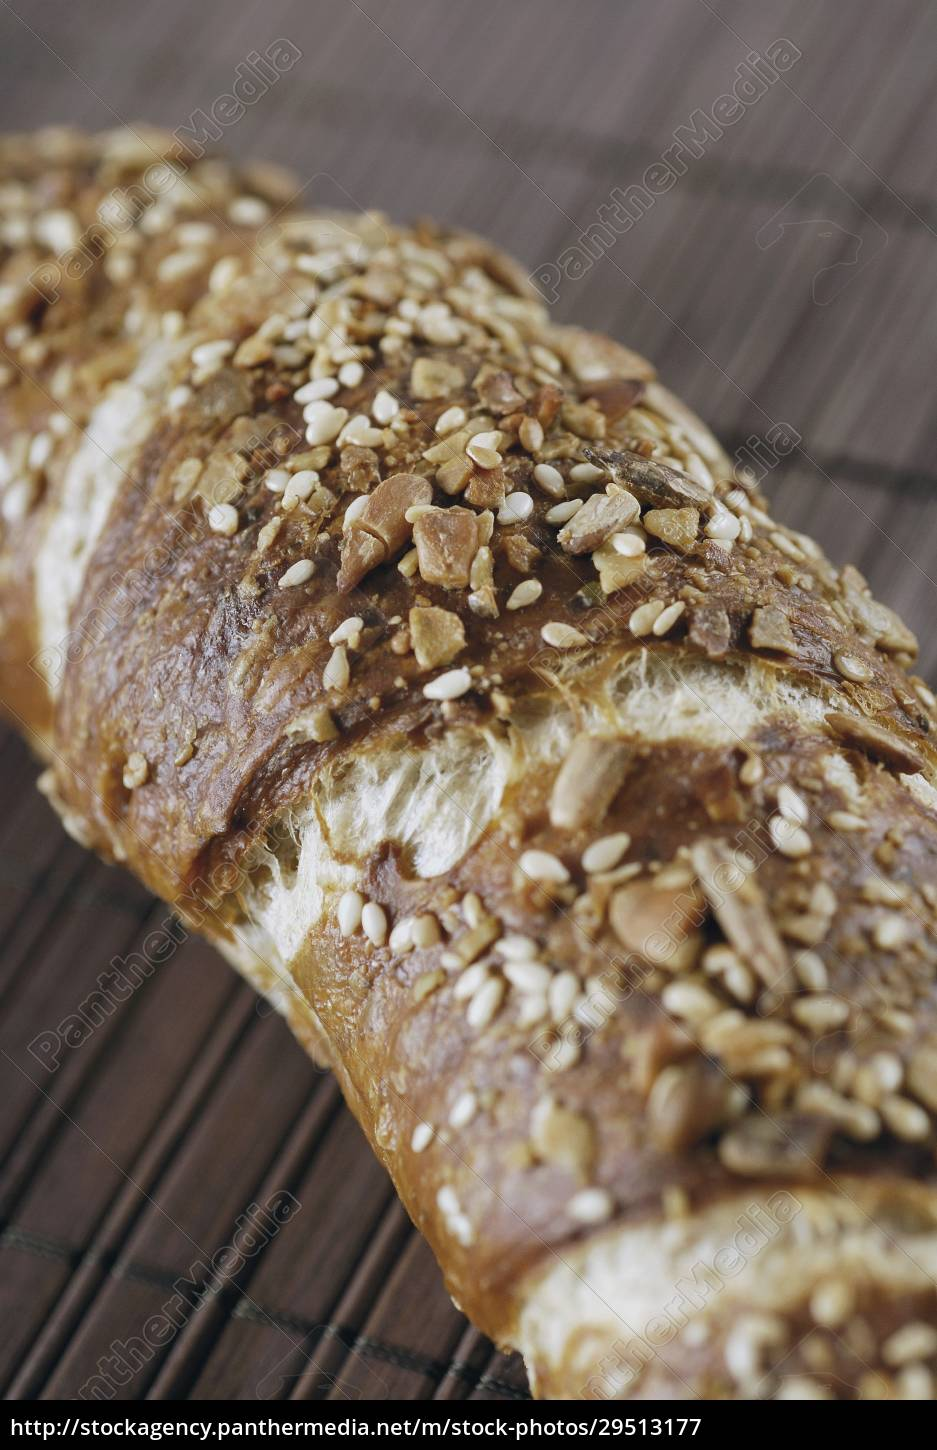 close_up, of, a, loaf, of, bread - 29513177